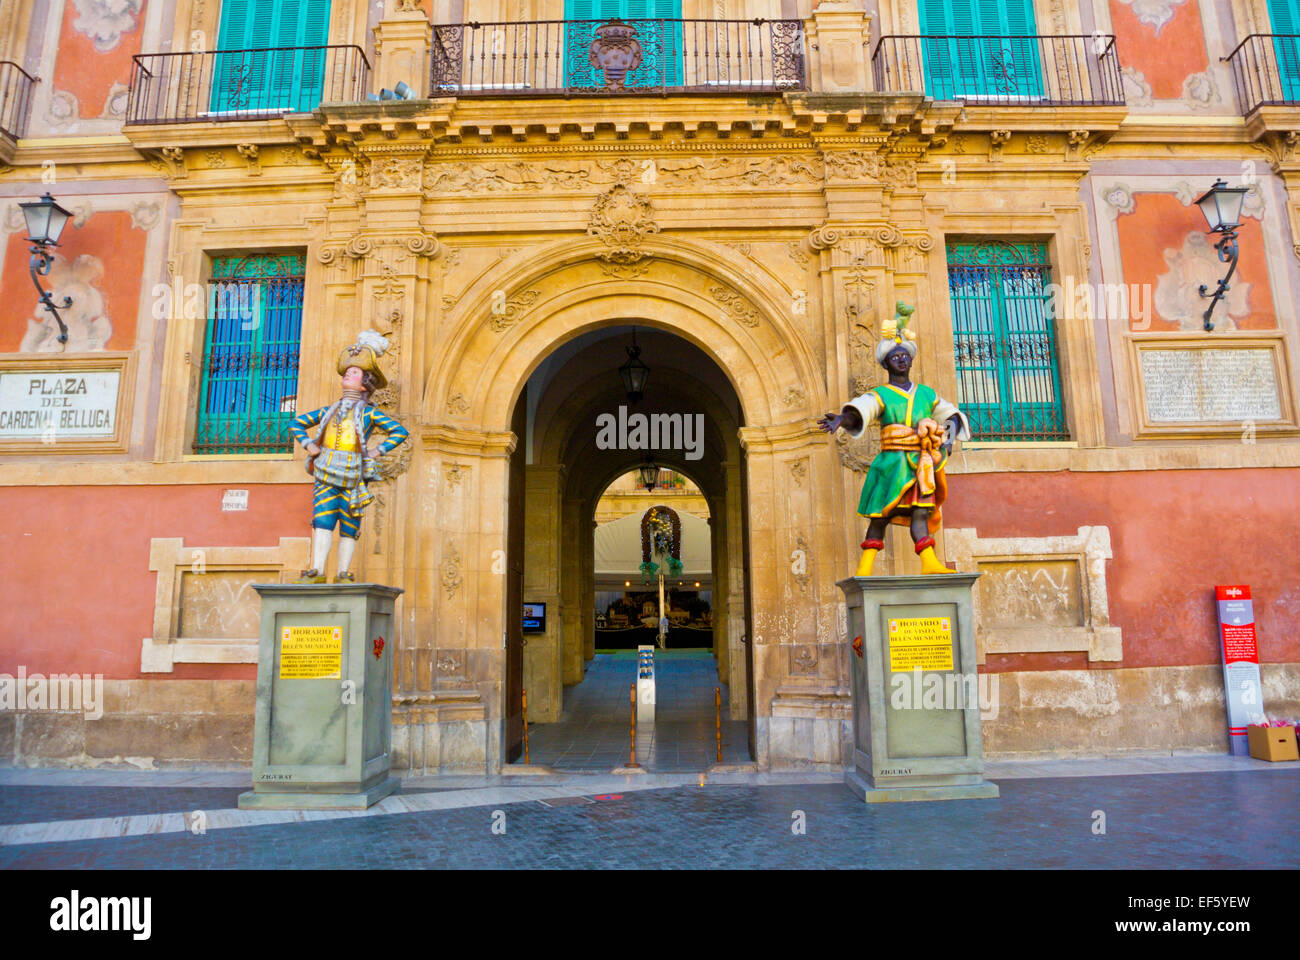 Palacio Episcopal, housing art gallery and exhibition spaces, Plaza del Cardenal Belluga square, old town, Murcia, - Stock Image